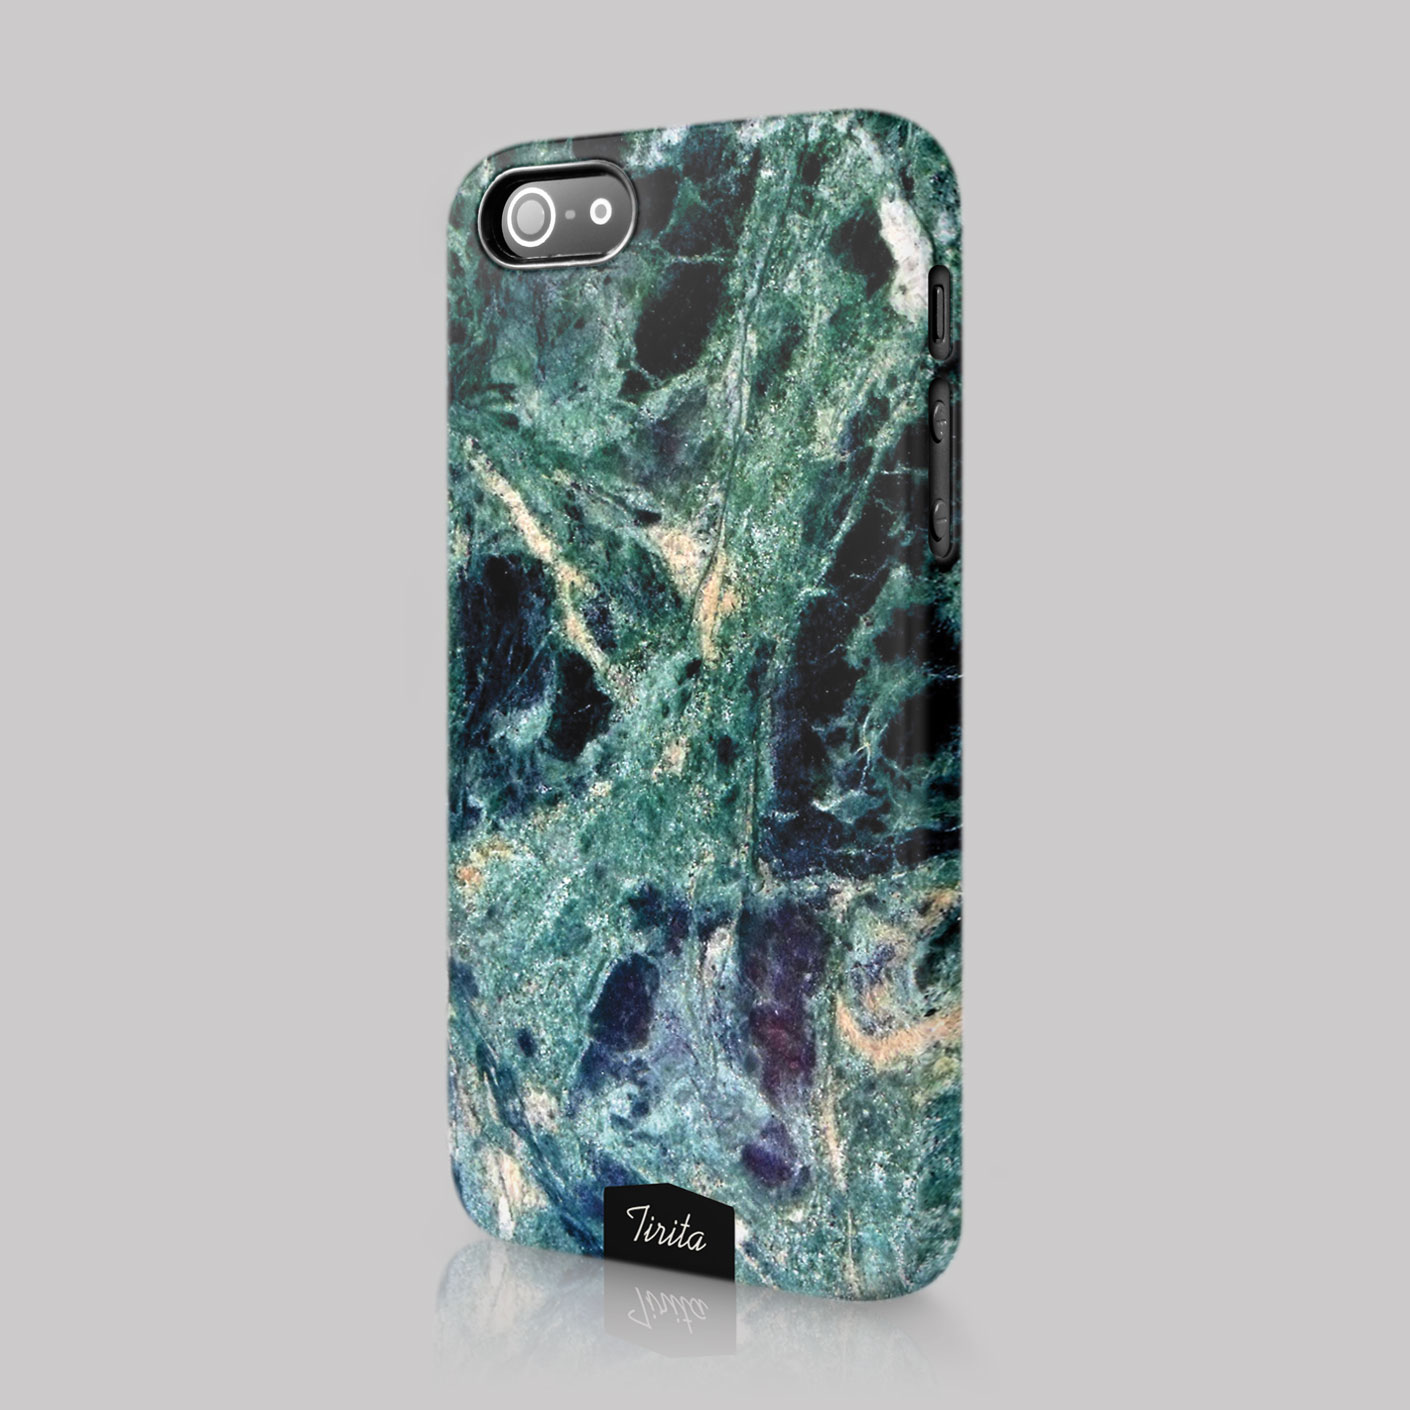 Tirita Marble Effect Look Alike Rock Case Hard Cover For LG Amazon Blackberry